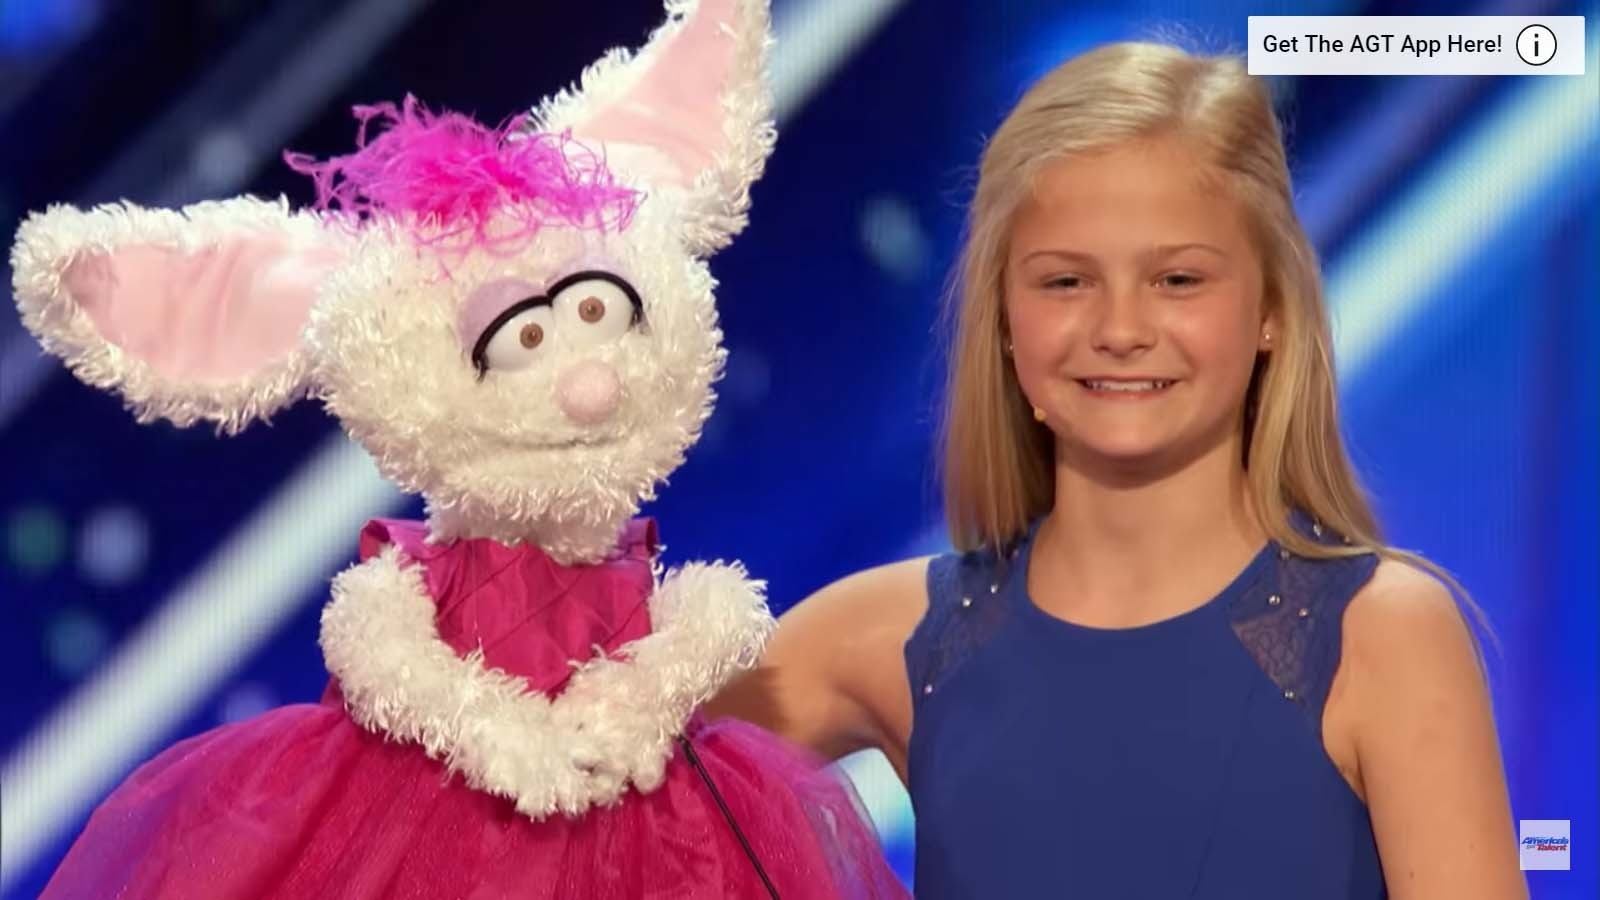 Americas got talent 2017 donald trump - Singing Tween Ventriloquist From America S Got Talent Is The Cure For What Ails You La Times